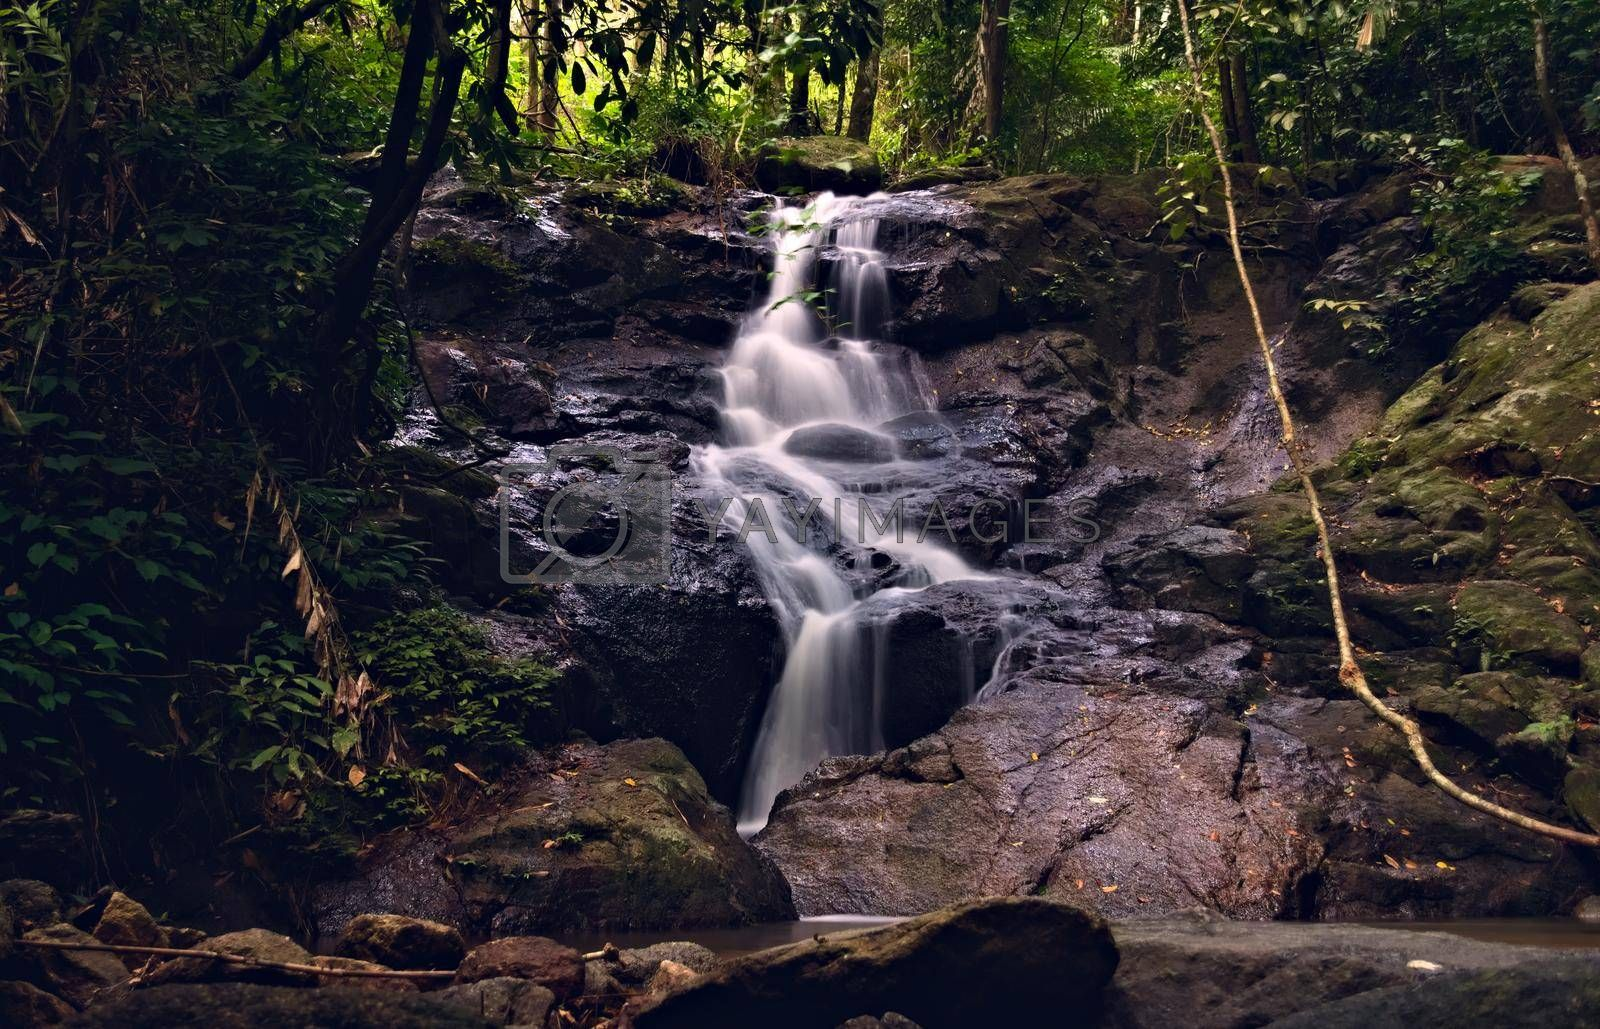 Royalty free image of Kathu waterfall in Phuket, Thailand. Beautiful cascade in the jungle. by hernan_hyper